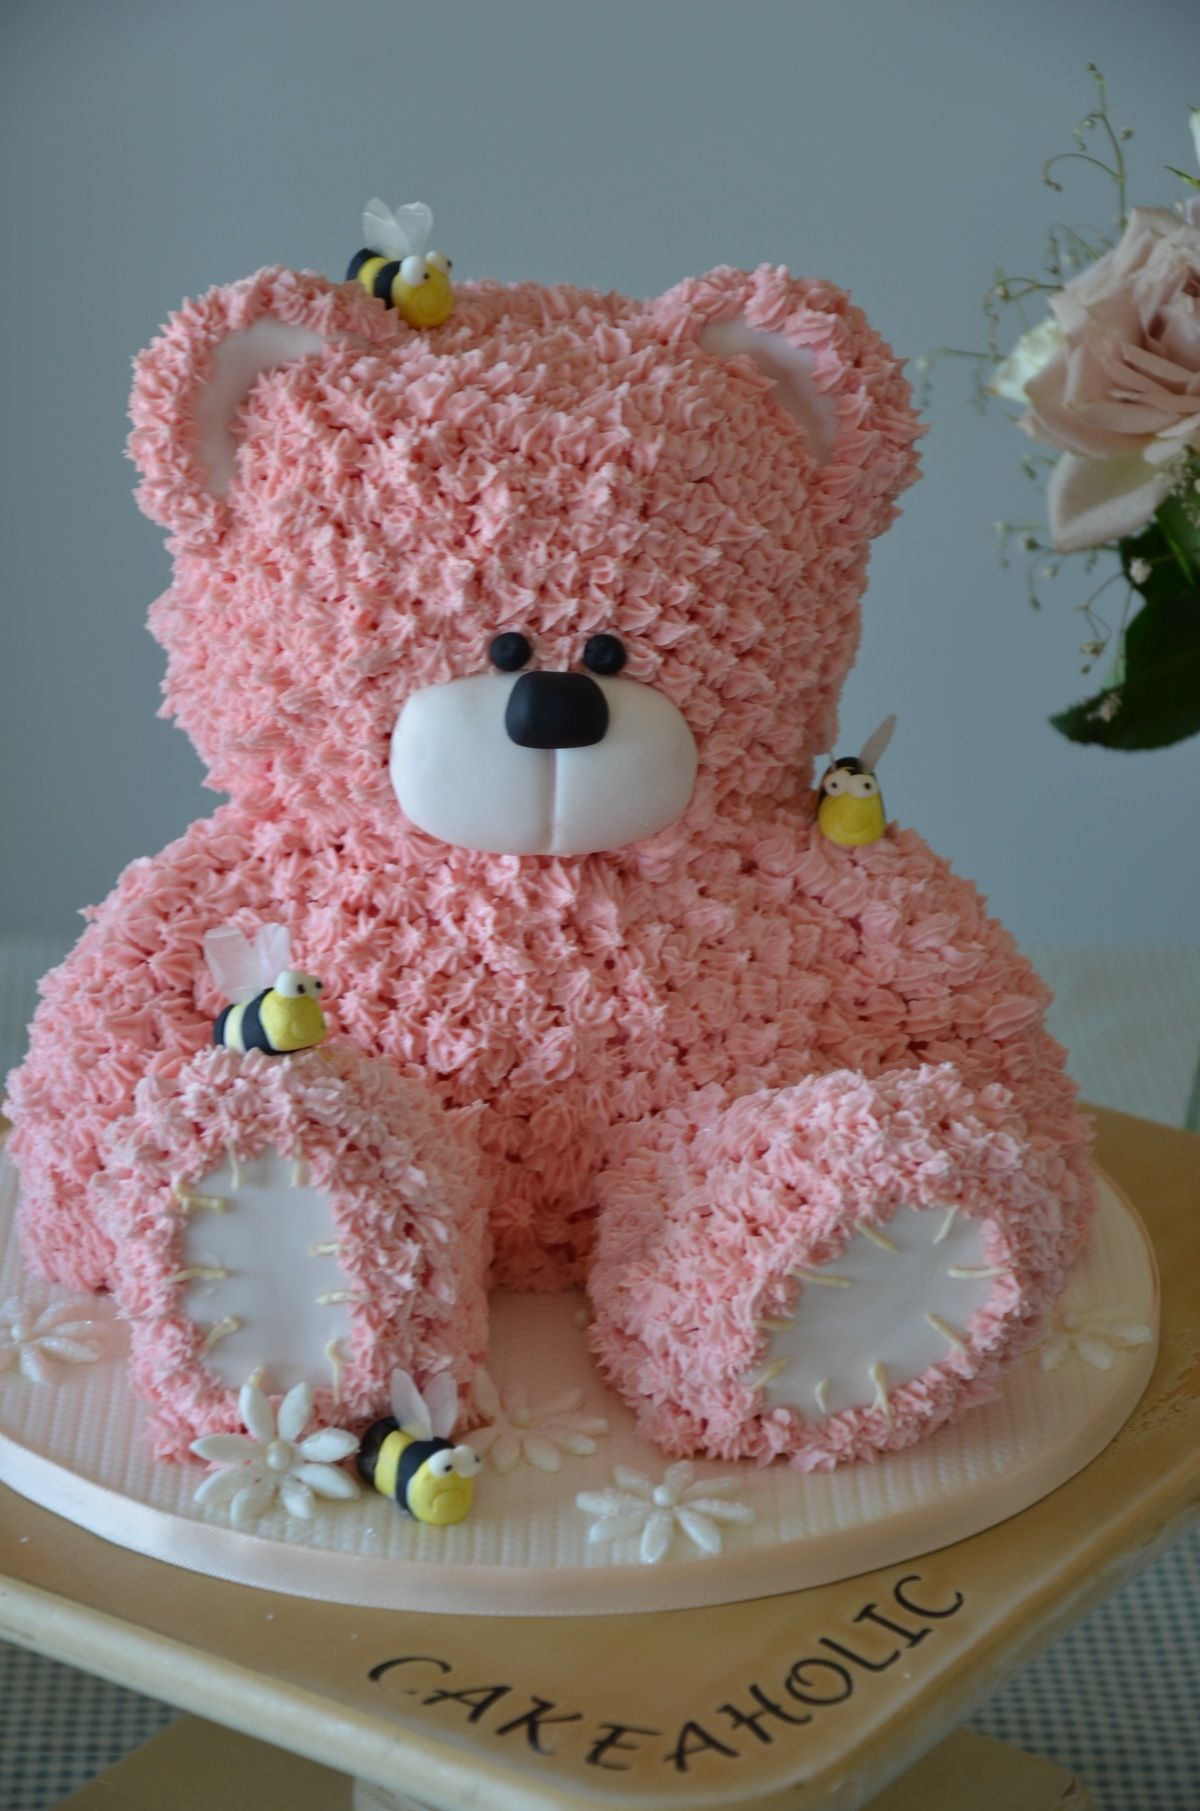 Adorable Teddy Bear Cake I Made Him More Of A Rich Tan Color